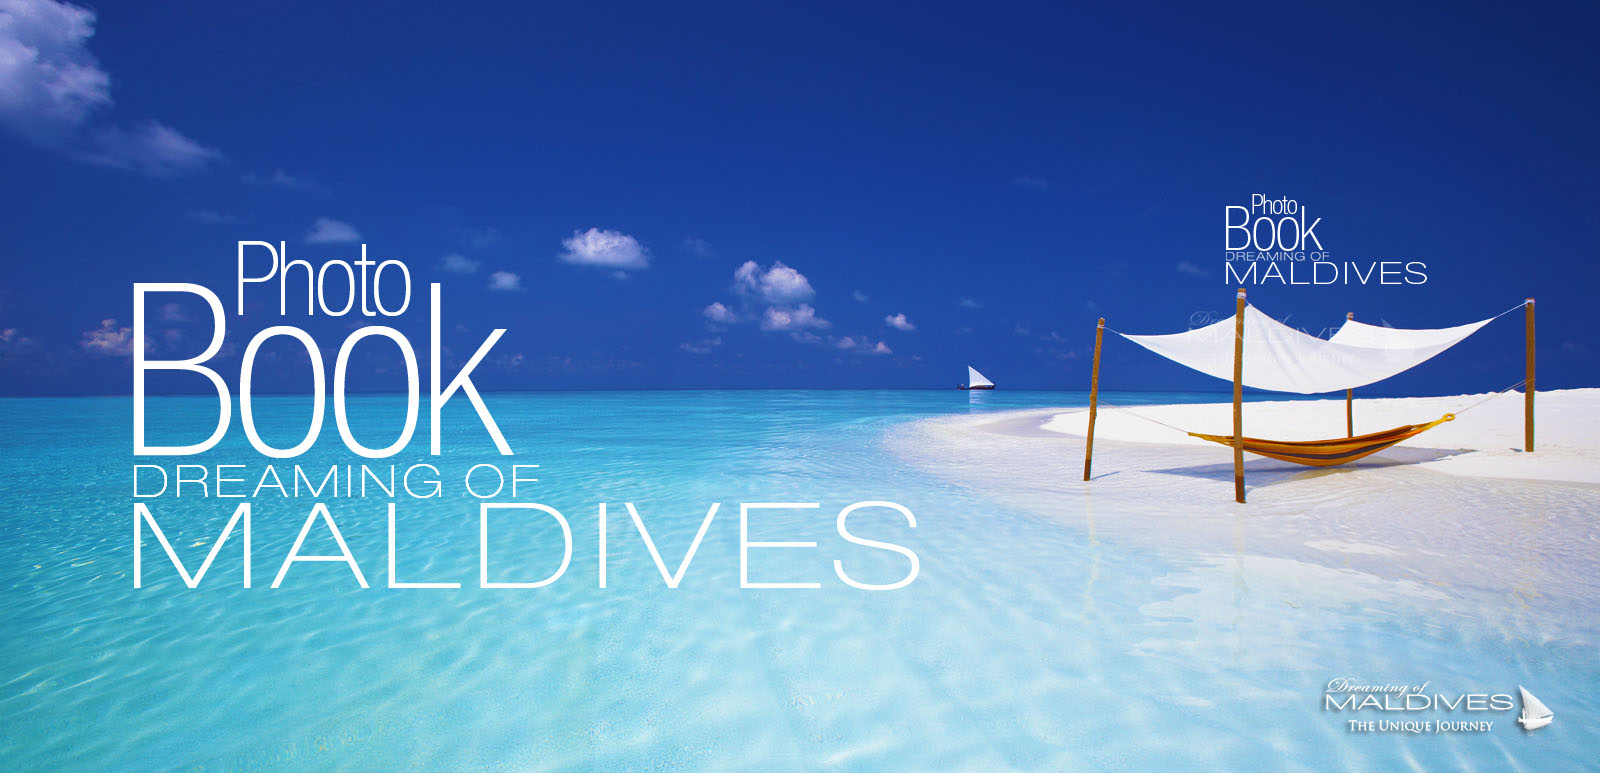 Maldives Photo Book - Dreaming of Maldives